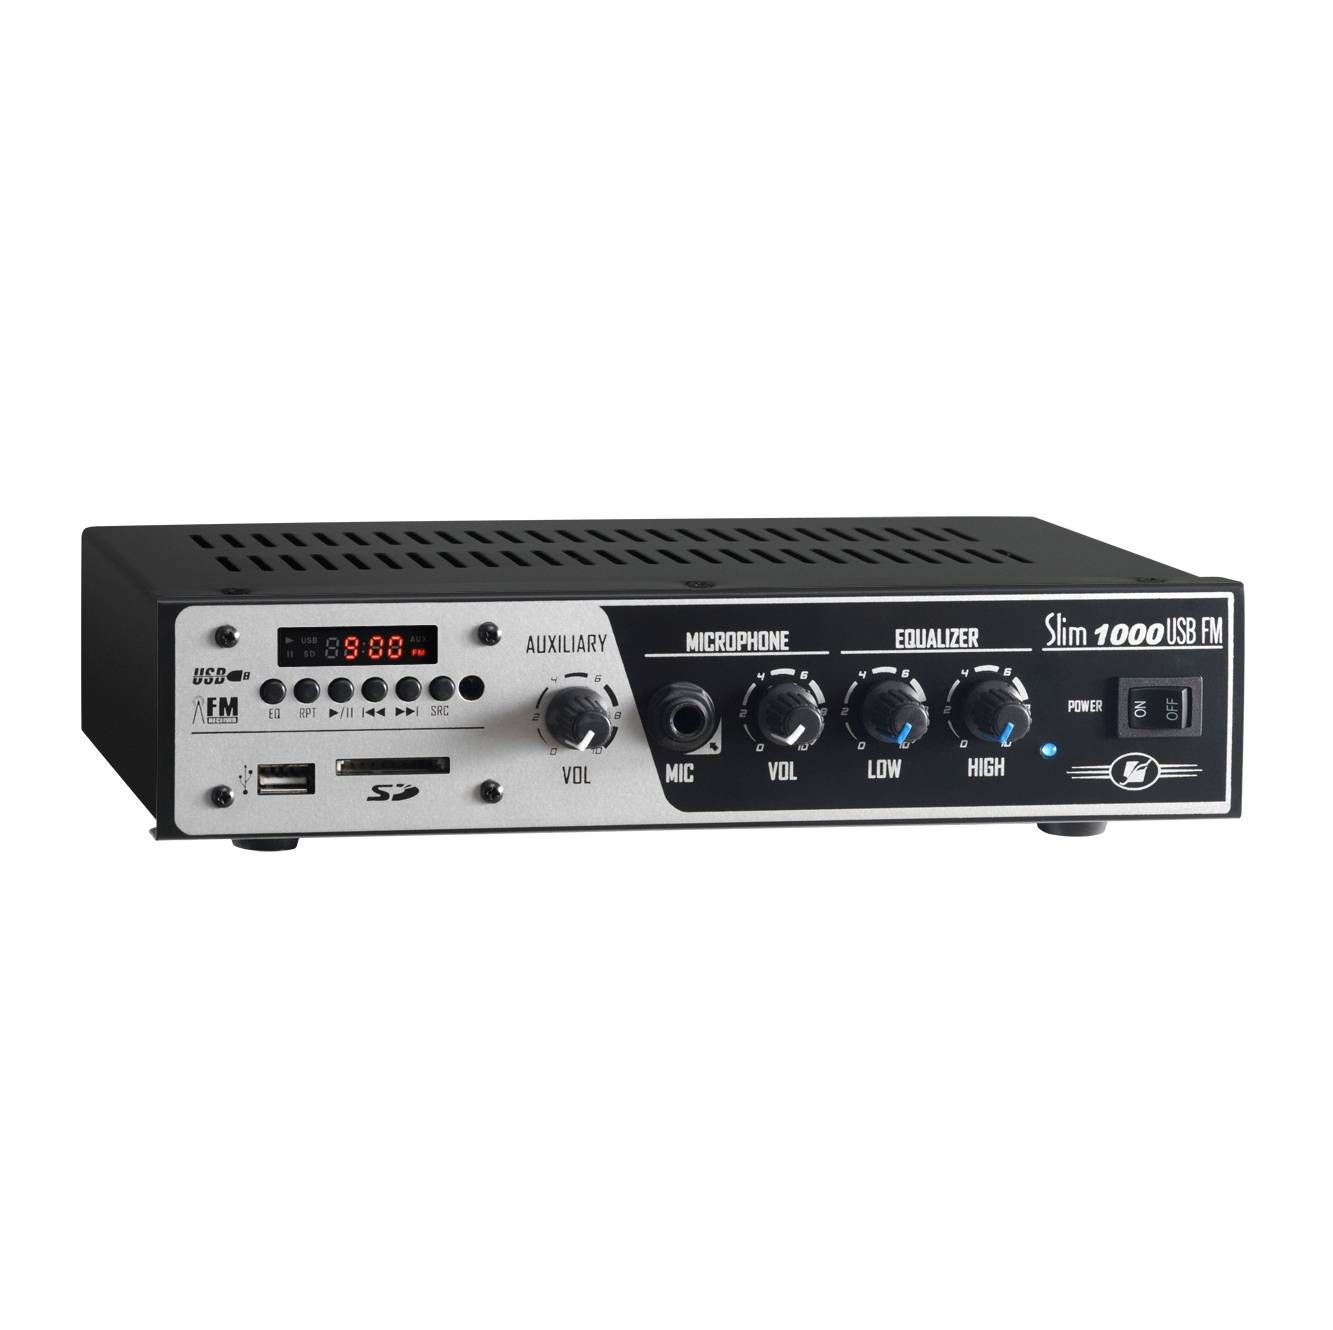 Amplificador Receiver até 12 cx Slim 1000 USB/SD CARD/AUX/FM - FRAHM